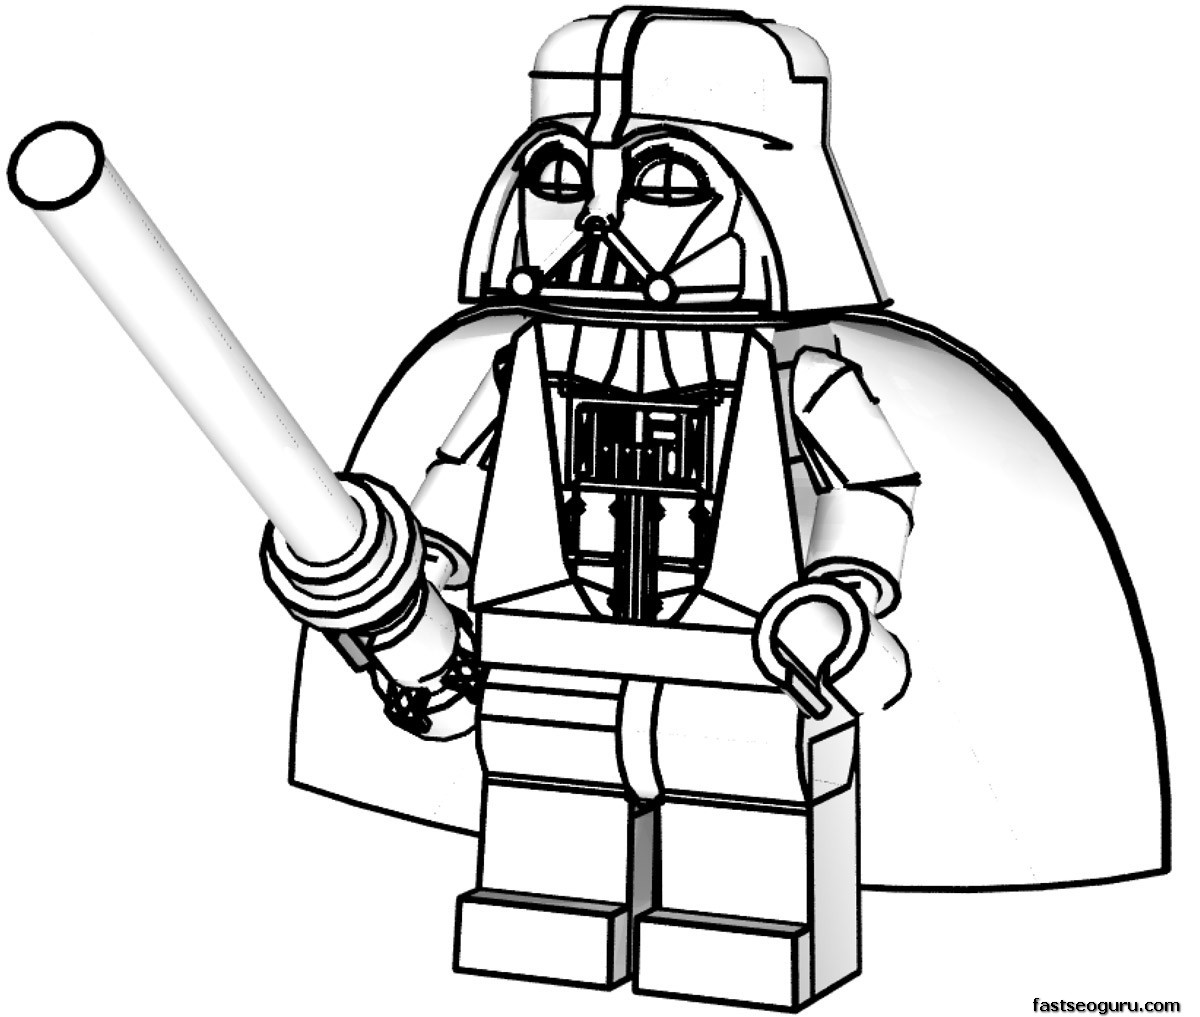 darth vader coloring pages darth vader coloring page coloring pages pinterest pages coloring darth vader